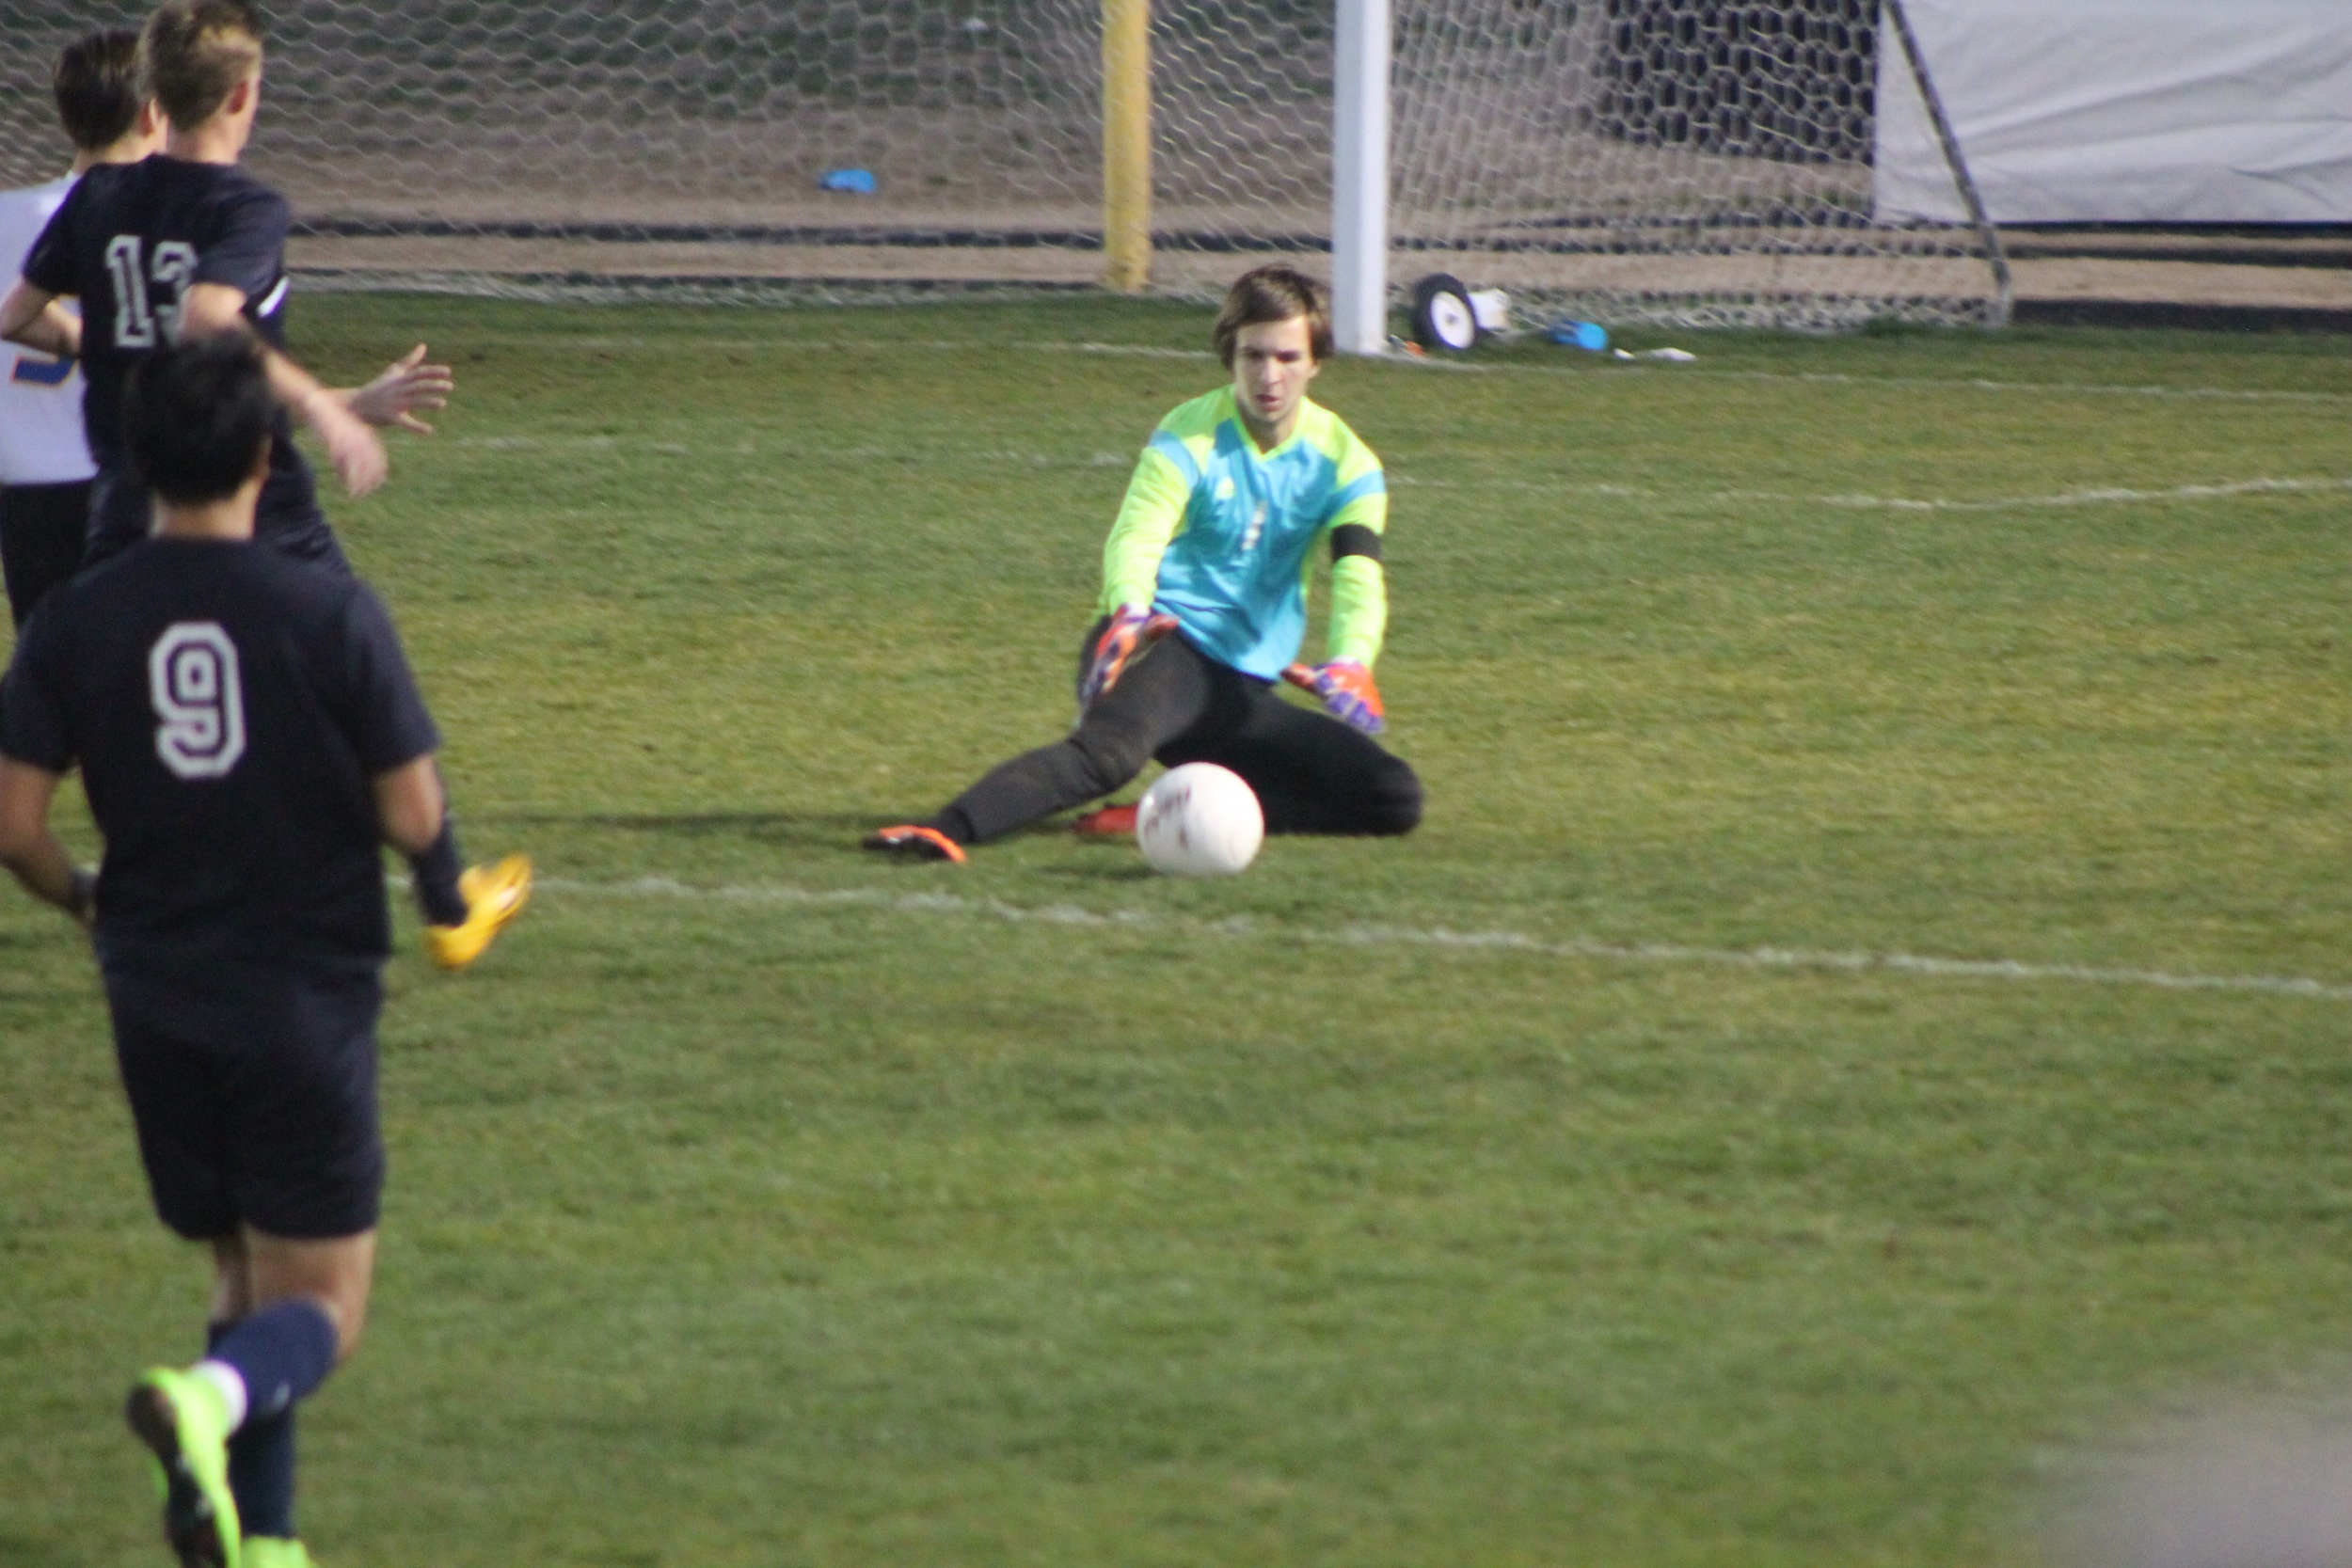 (Phot by Jared Routon) Goalie Nick West makes a save for North Lamar.